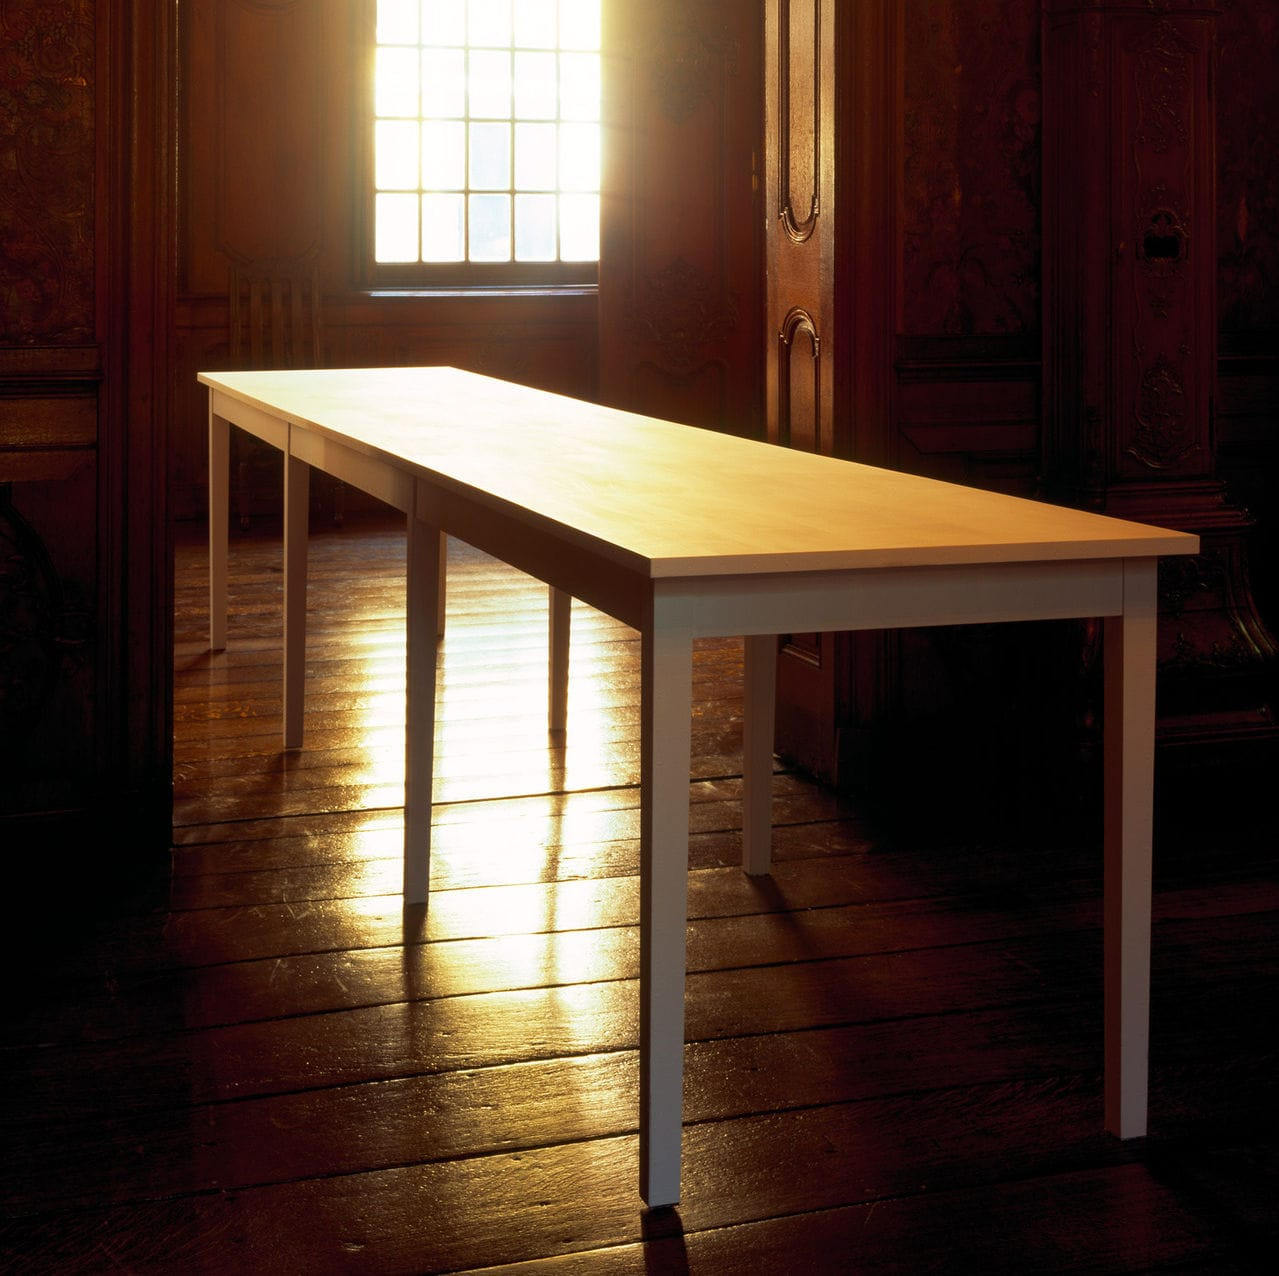 Table Blanche Contemporary Work Table Wooden Rectangular For Public